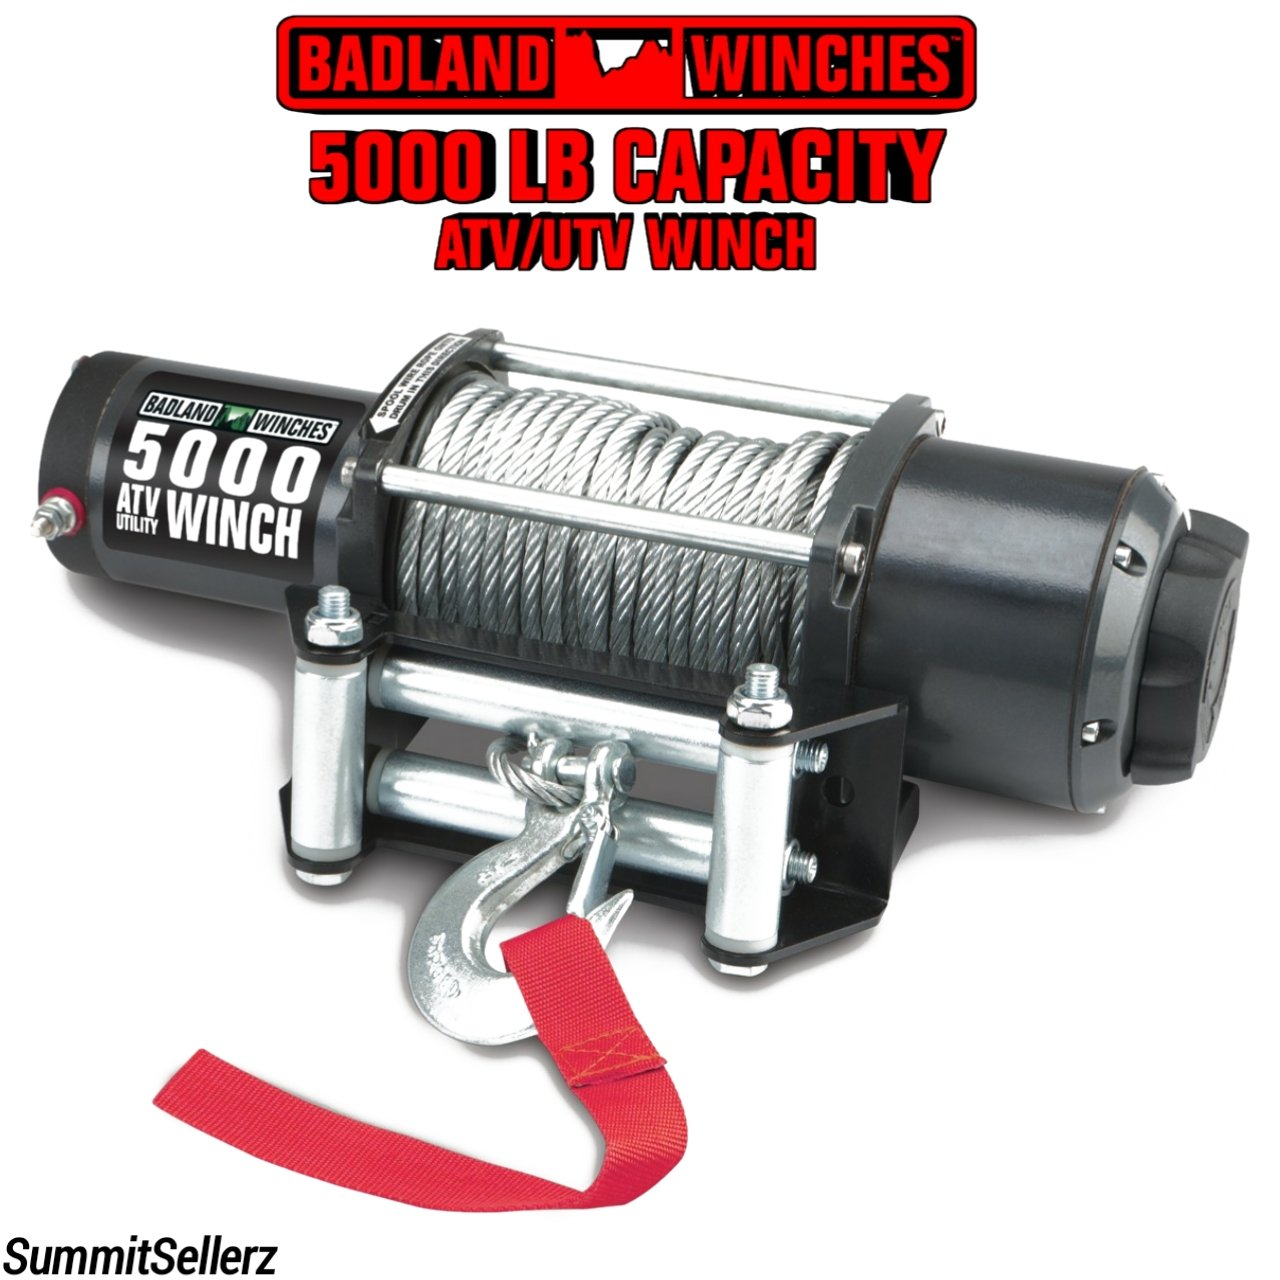 5000 lb. ATV/Utility Electric Winch with Automatic Load-Holding ...